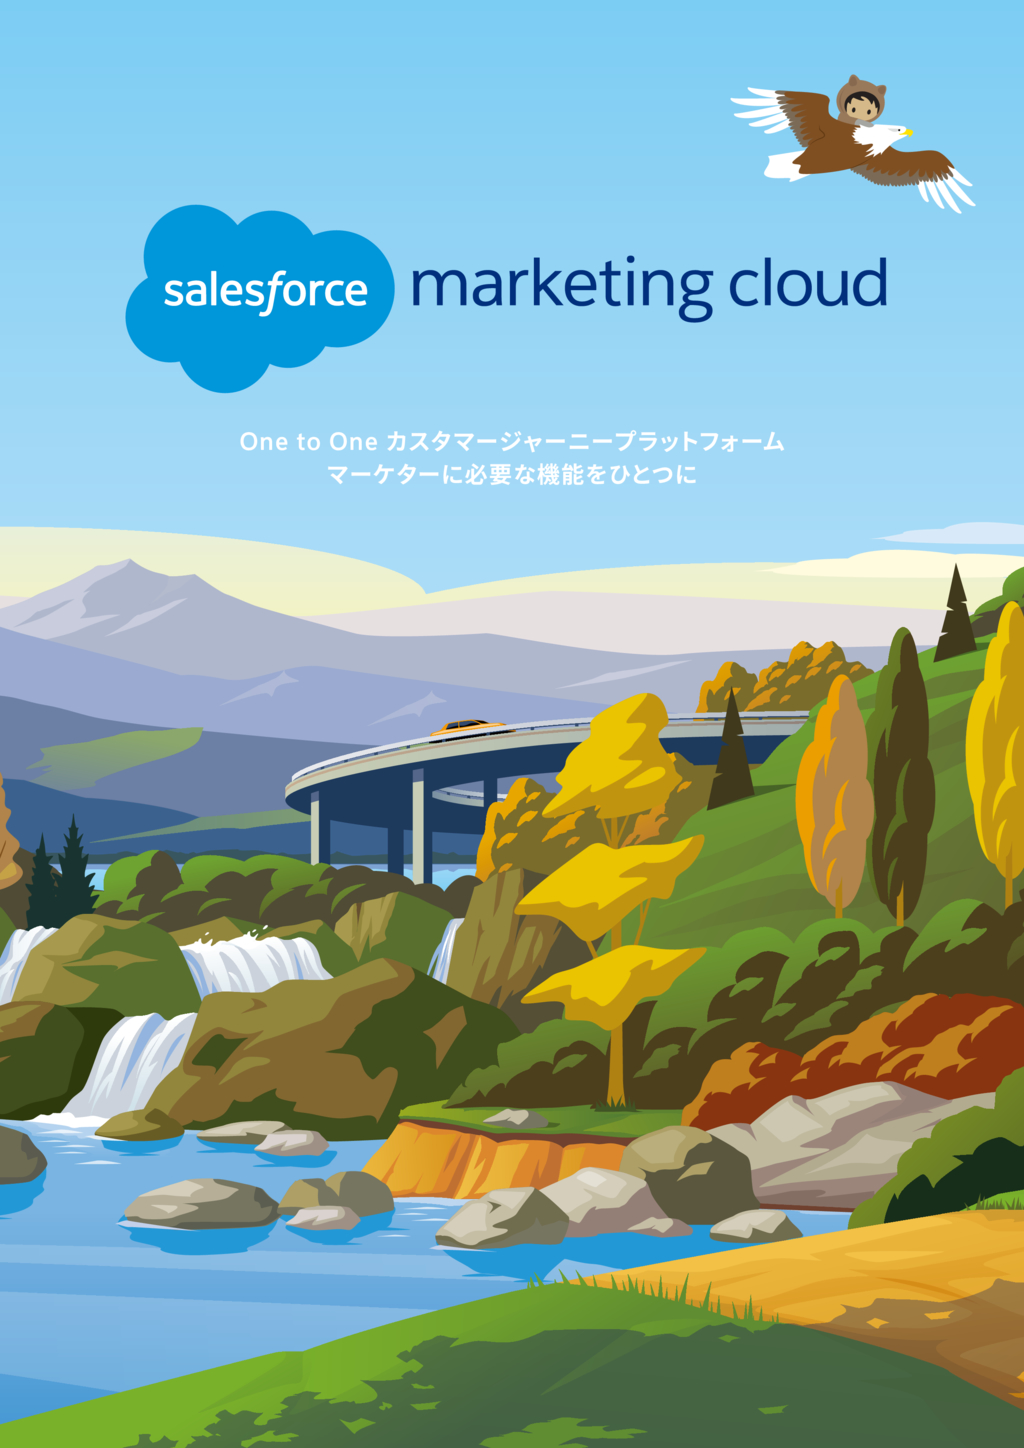 Salesforce Marketing Cloudの資料